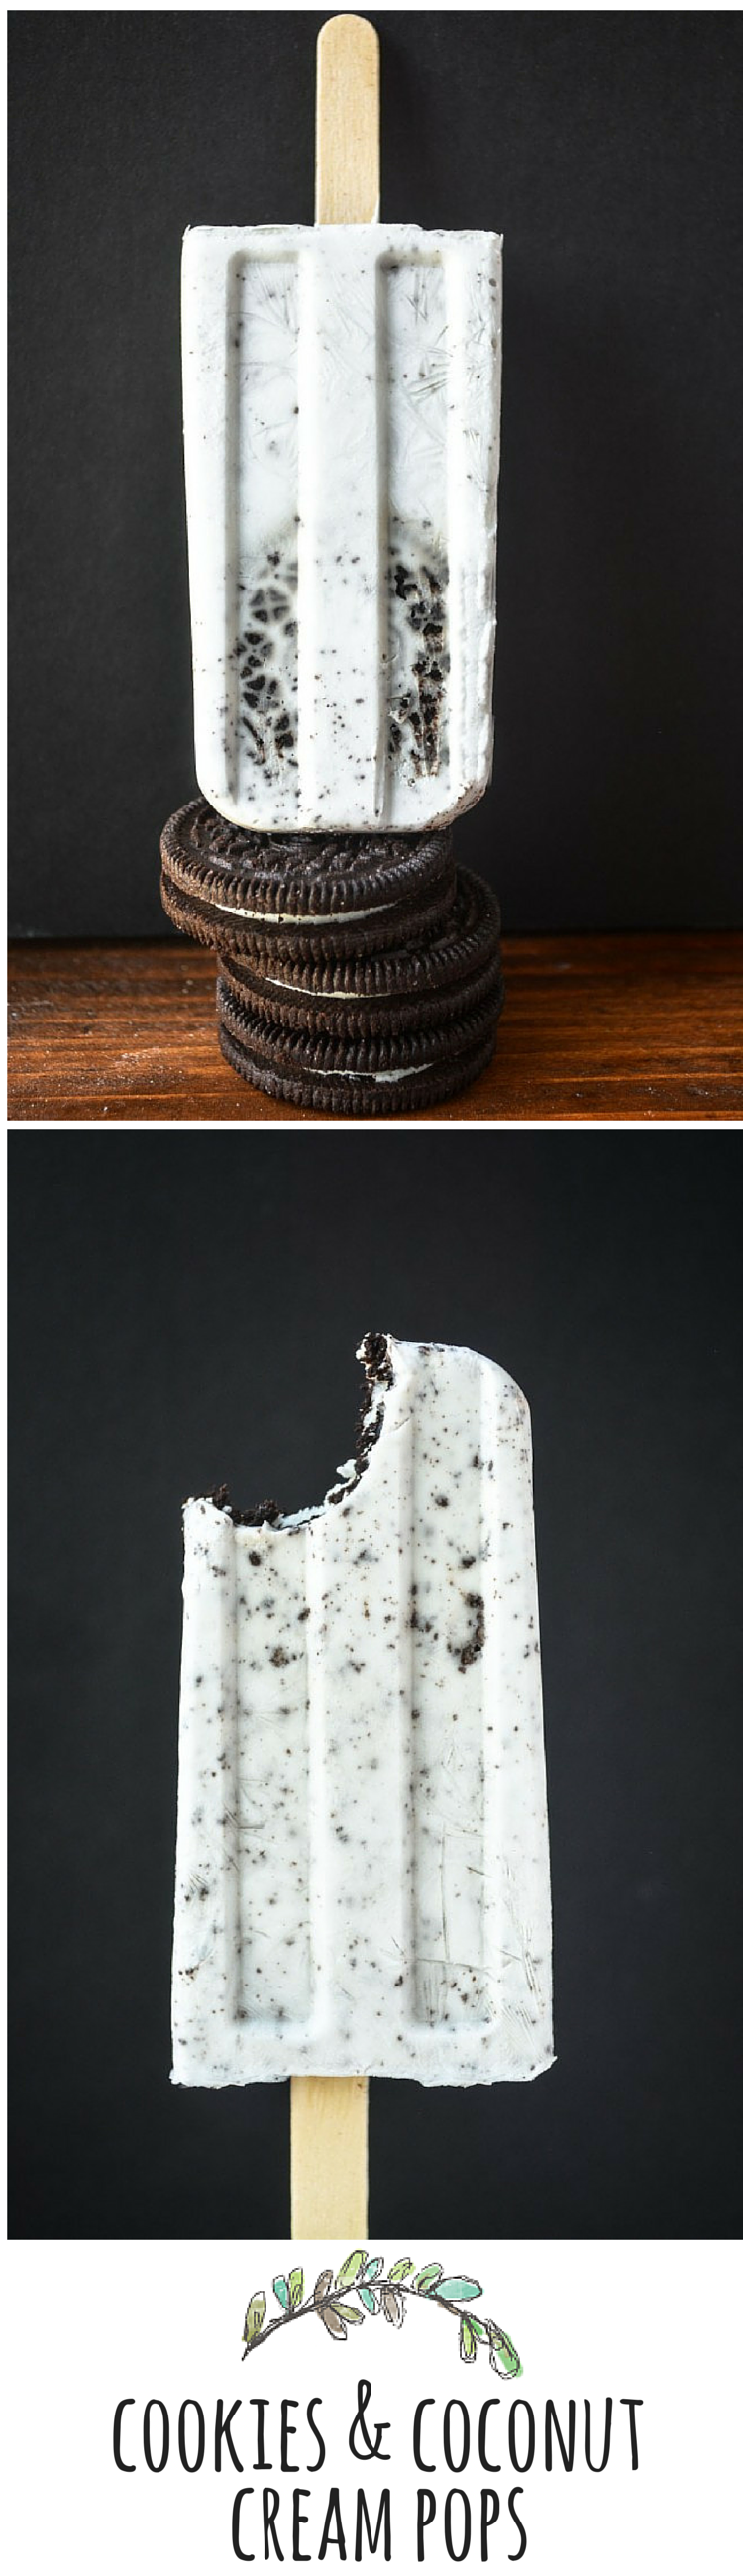 Creamy, dreamy, Oreo cookies blended with healthy coconut milk for a fabulously refreshing popsicle!